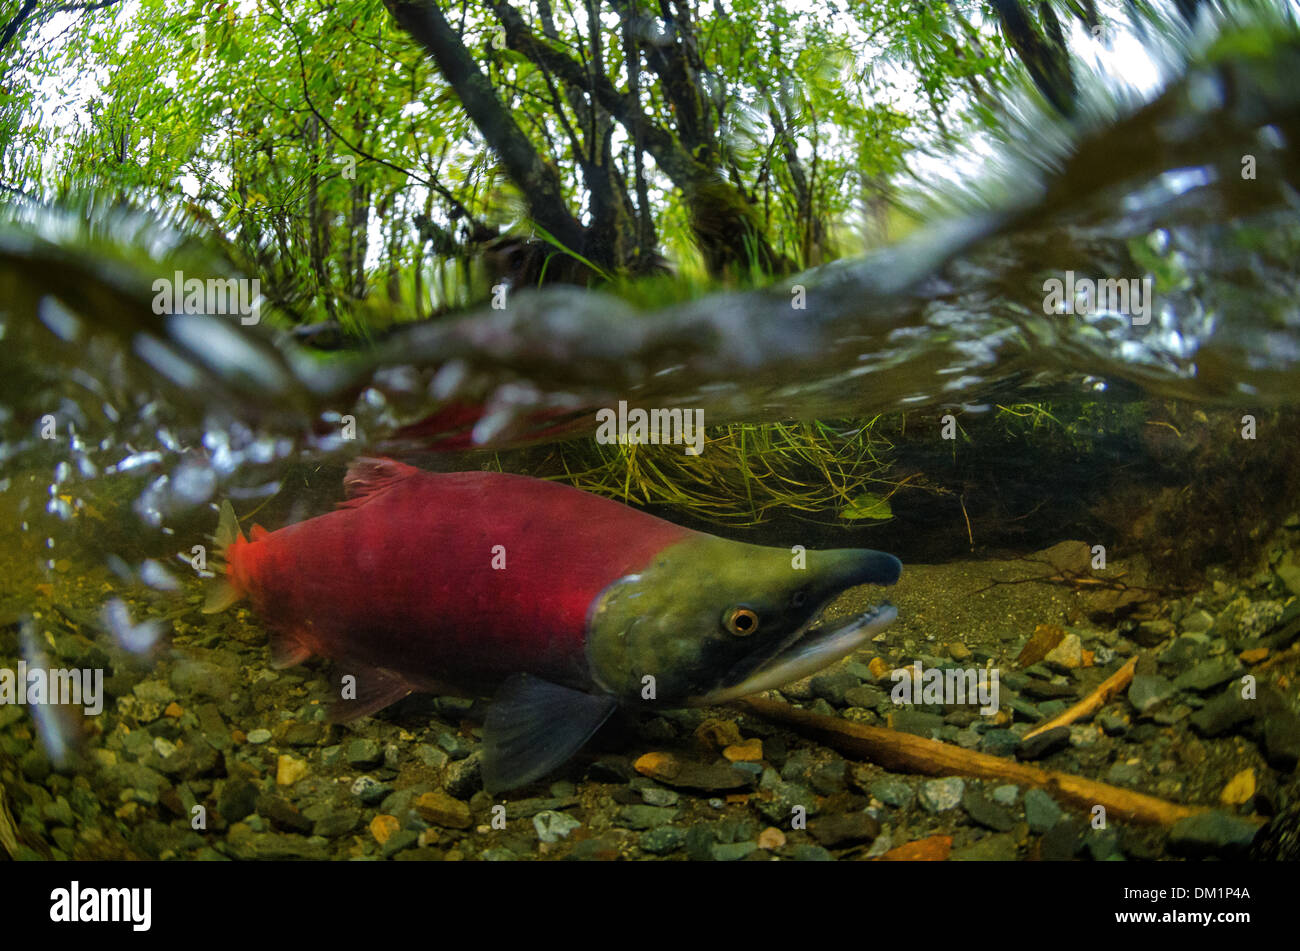 a red male sockeye salmon Oncorhynchus nerka in an alaska river showing the change in body and color during breeding times - Stock Image